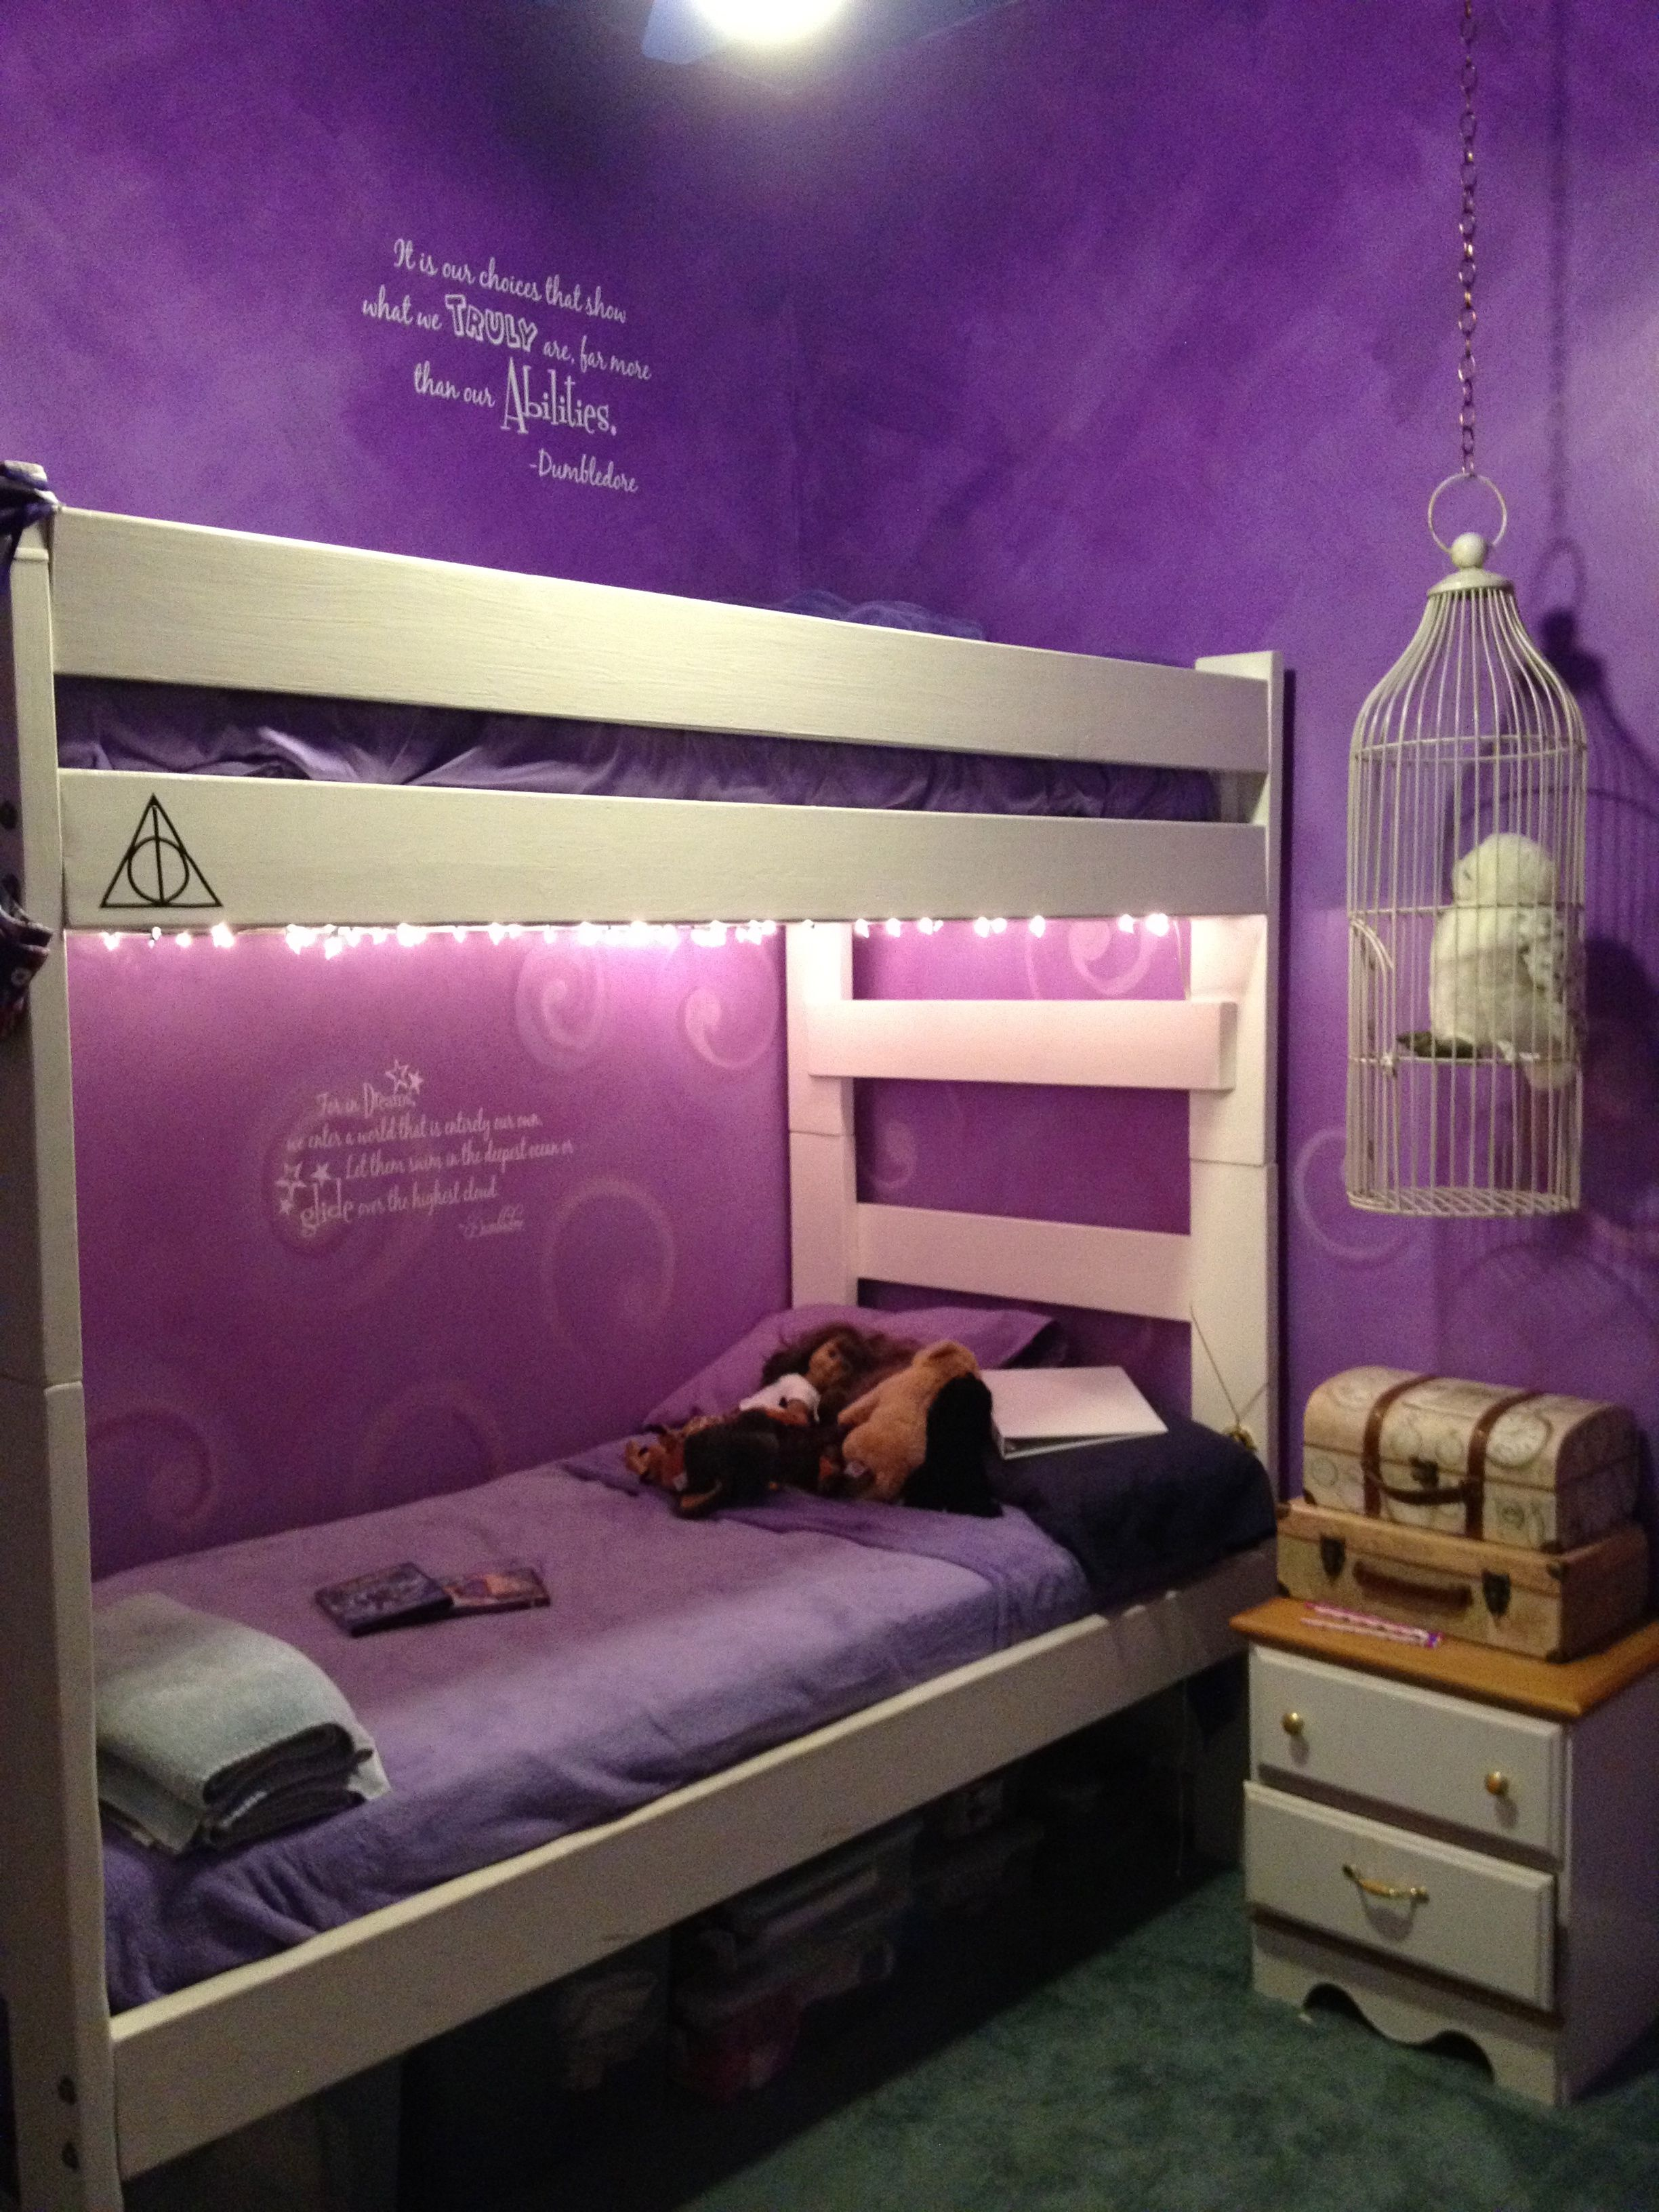 Harry Potter Bedroom I Love Harry Potter Plus Those Purple Walls